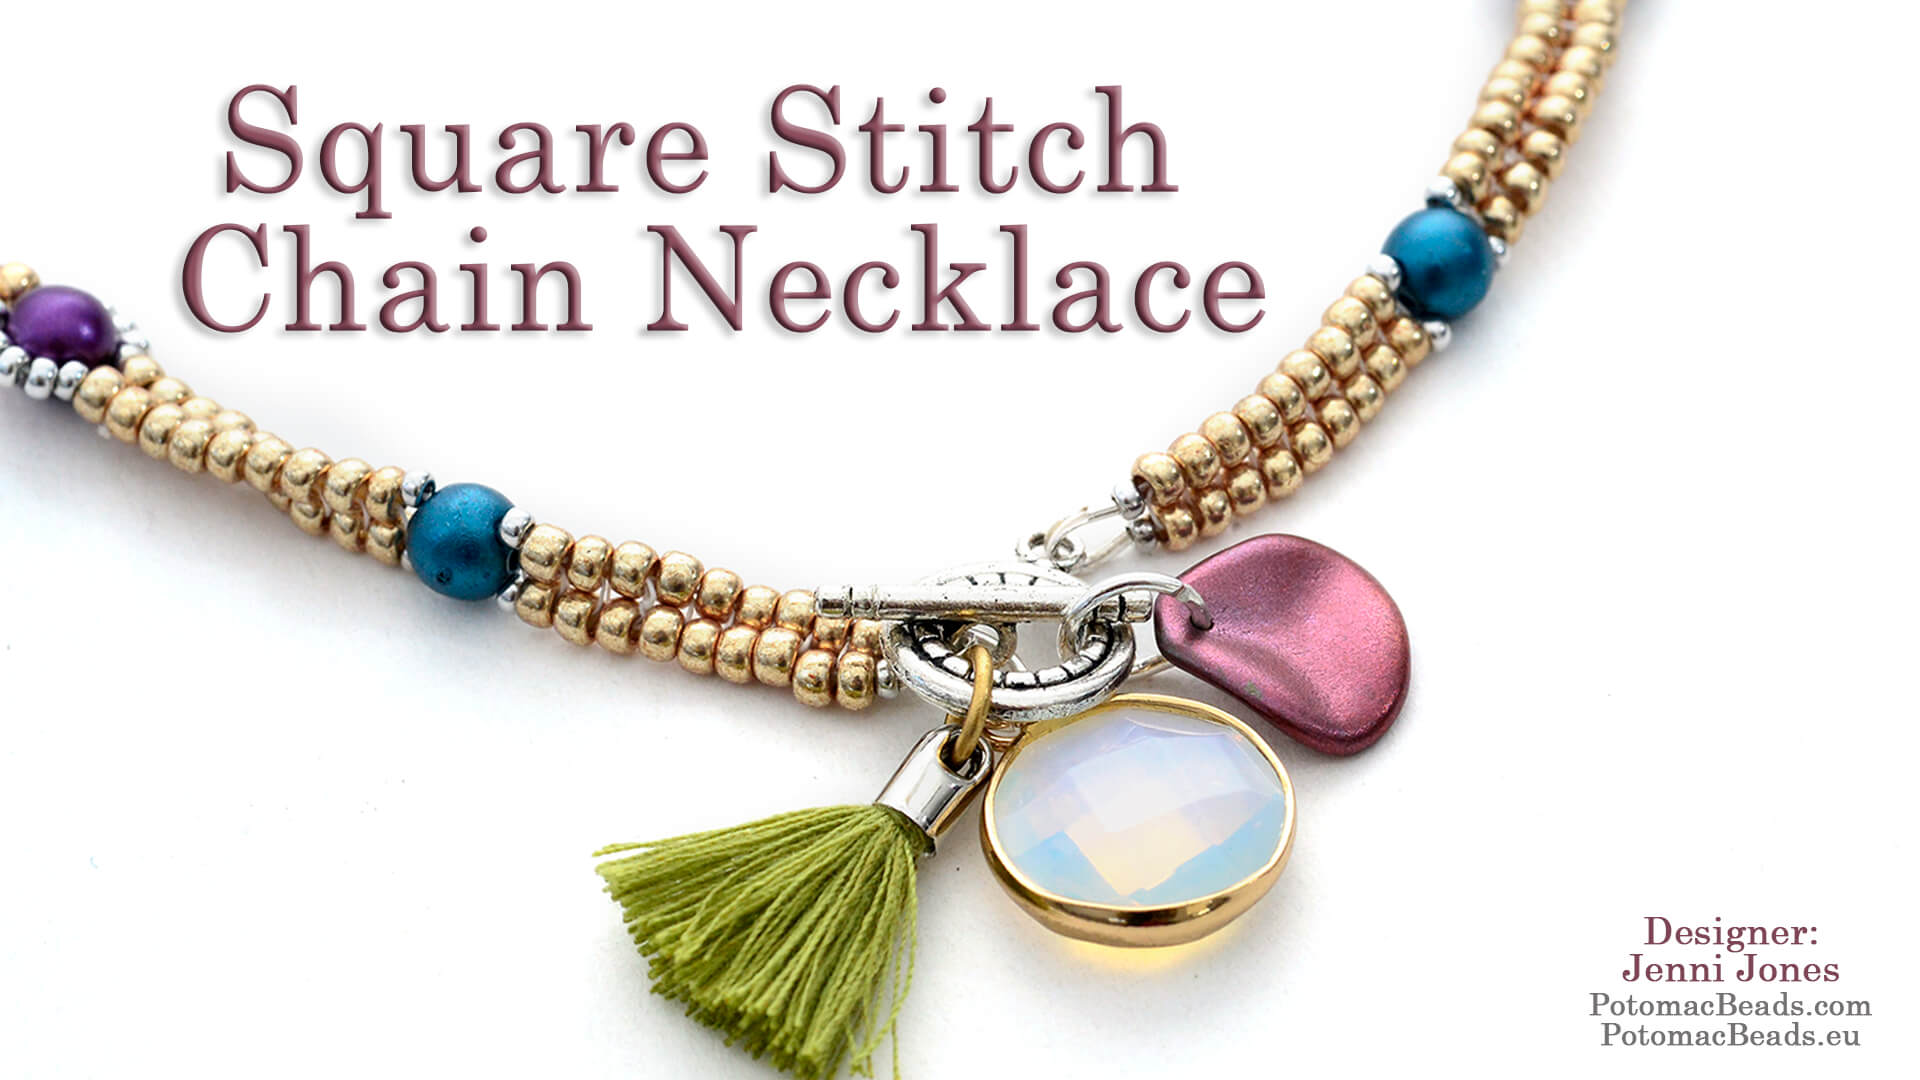 How to Bead Jewelry / Videos Sorted by Beads / All Other Bead Videos / Square Stitch Chain Necklace Tutorial